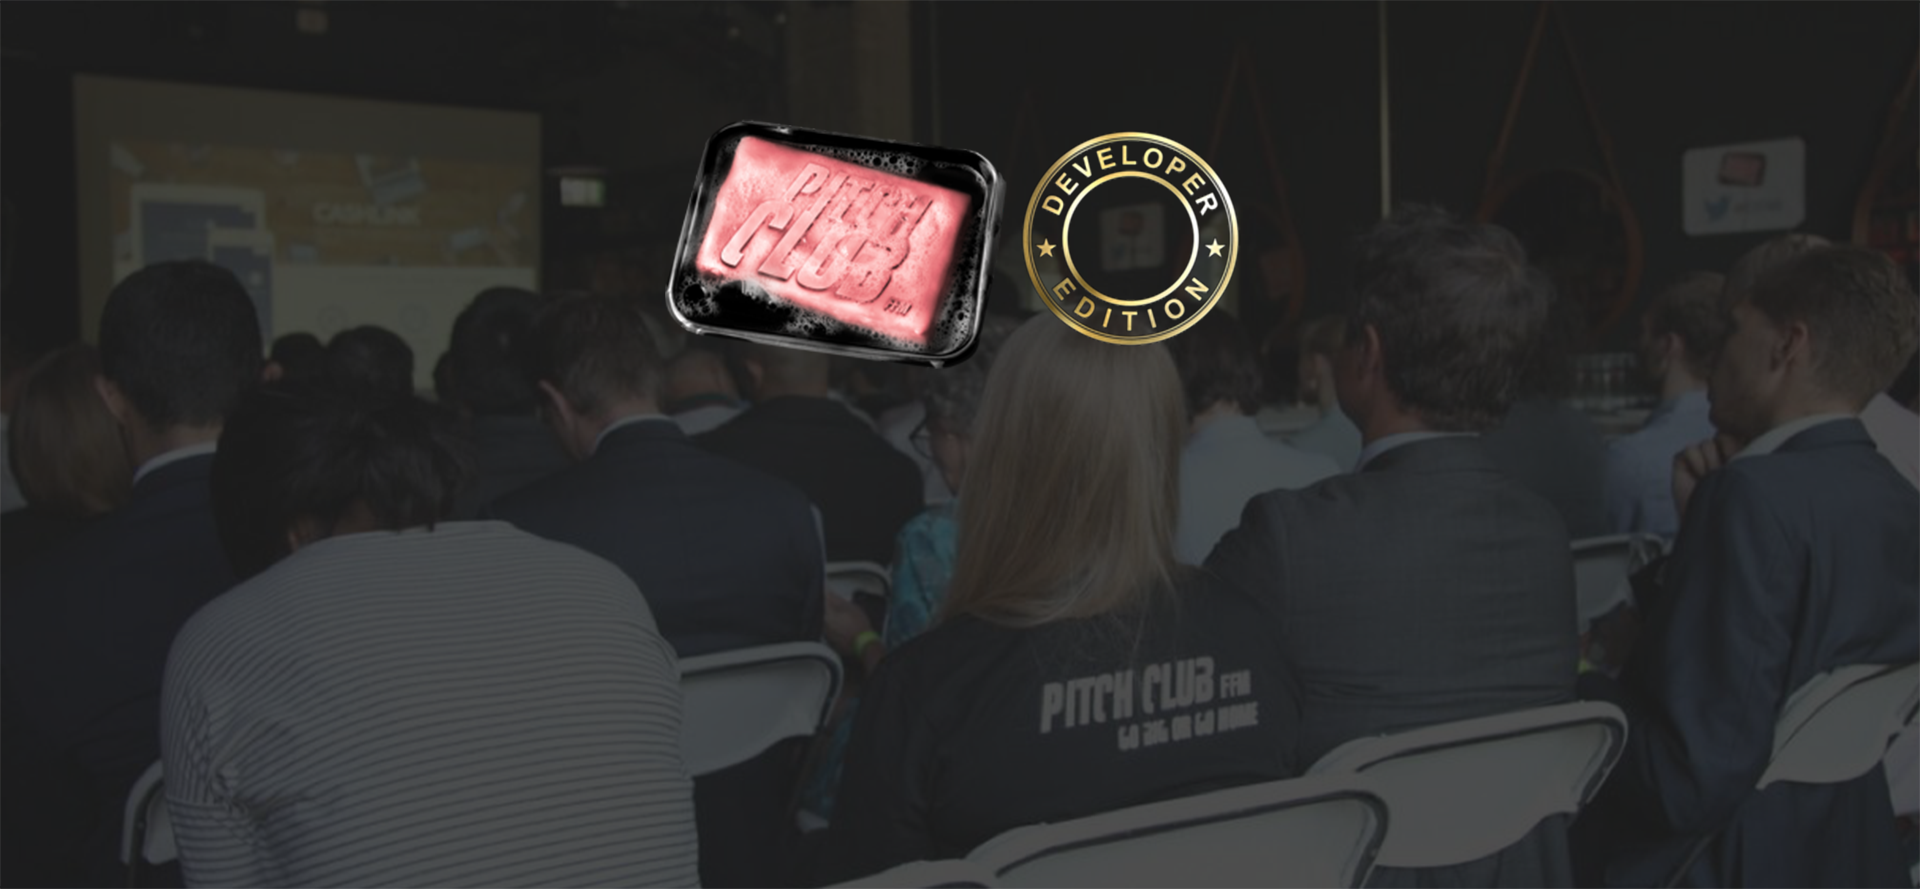 Pitch Club Developer Edition am 15.3. in Berlin – Campanda on Stage || PCD#9